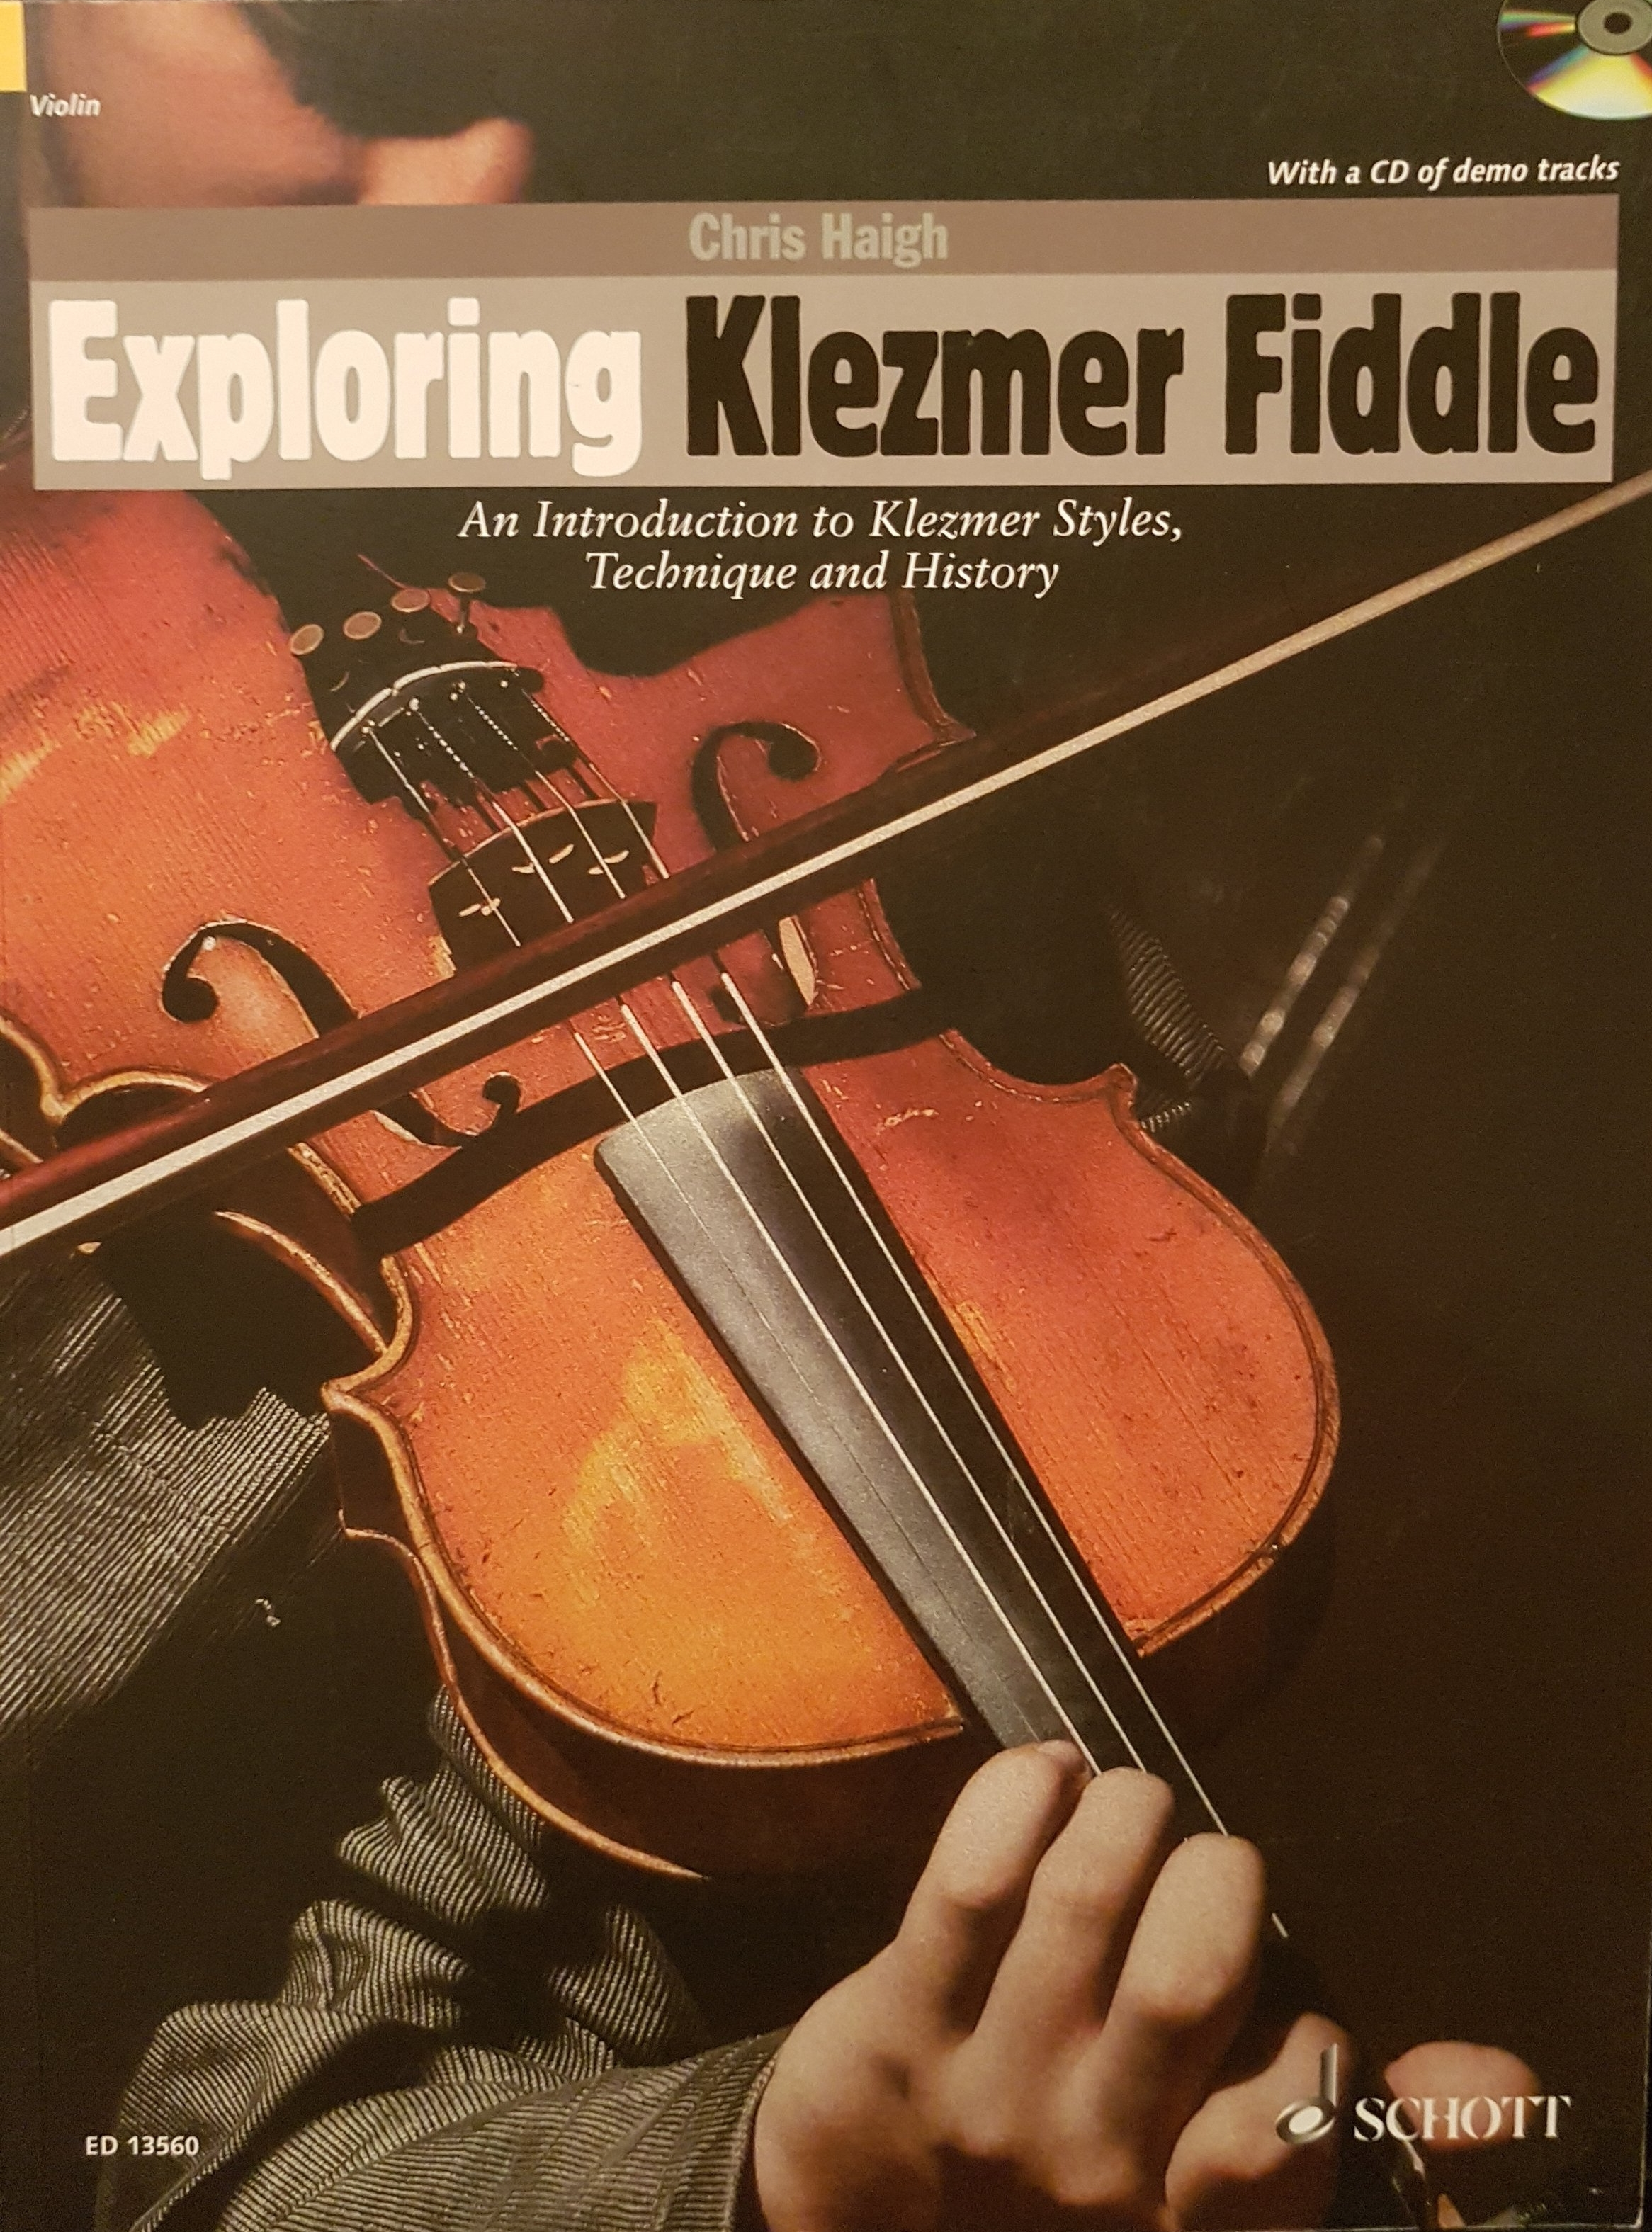 Exploring Klezmer Fiddle by Chris Haigh with Cd Schott publications 2015.jpg